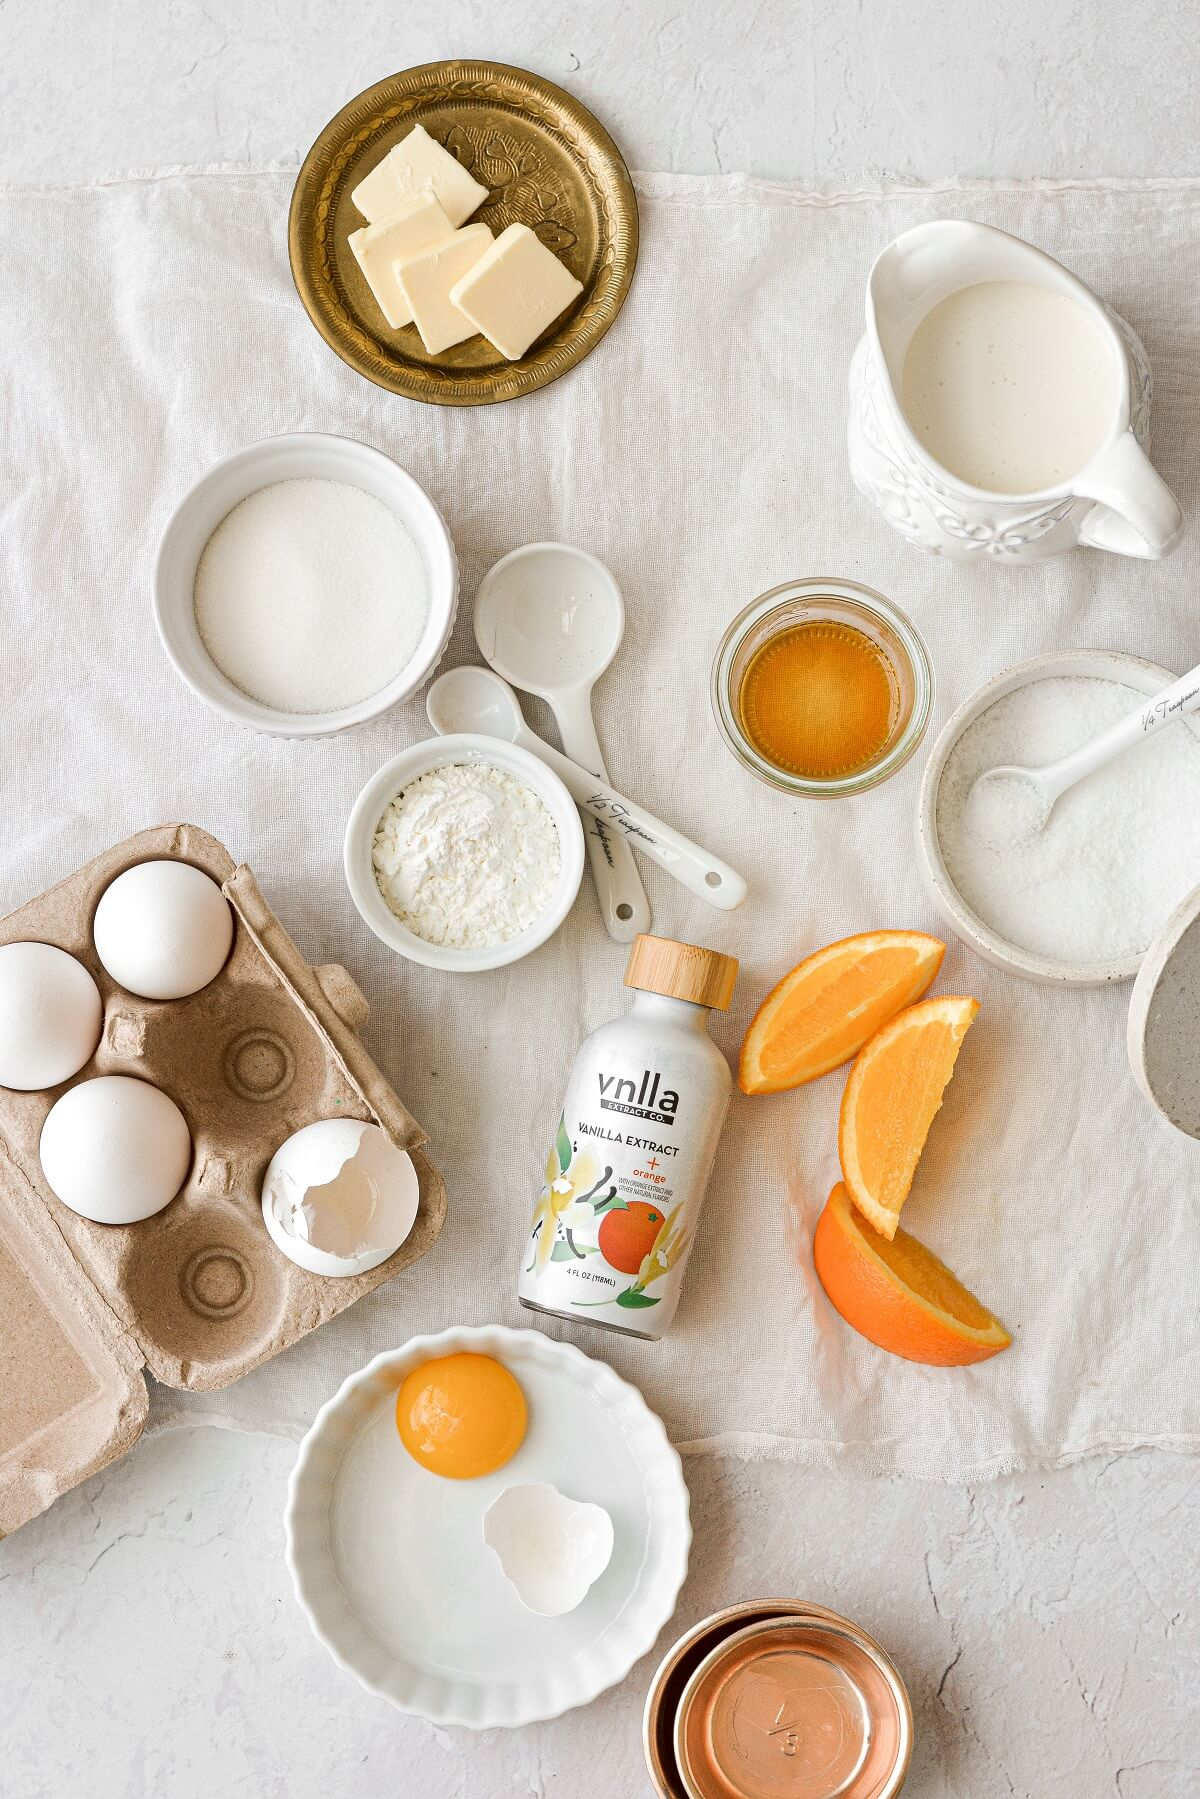 Ingredients for orange vanilla custard spread out on a white linen.